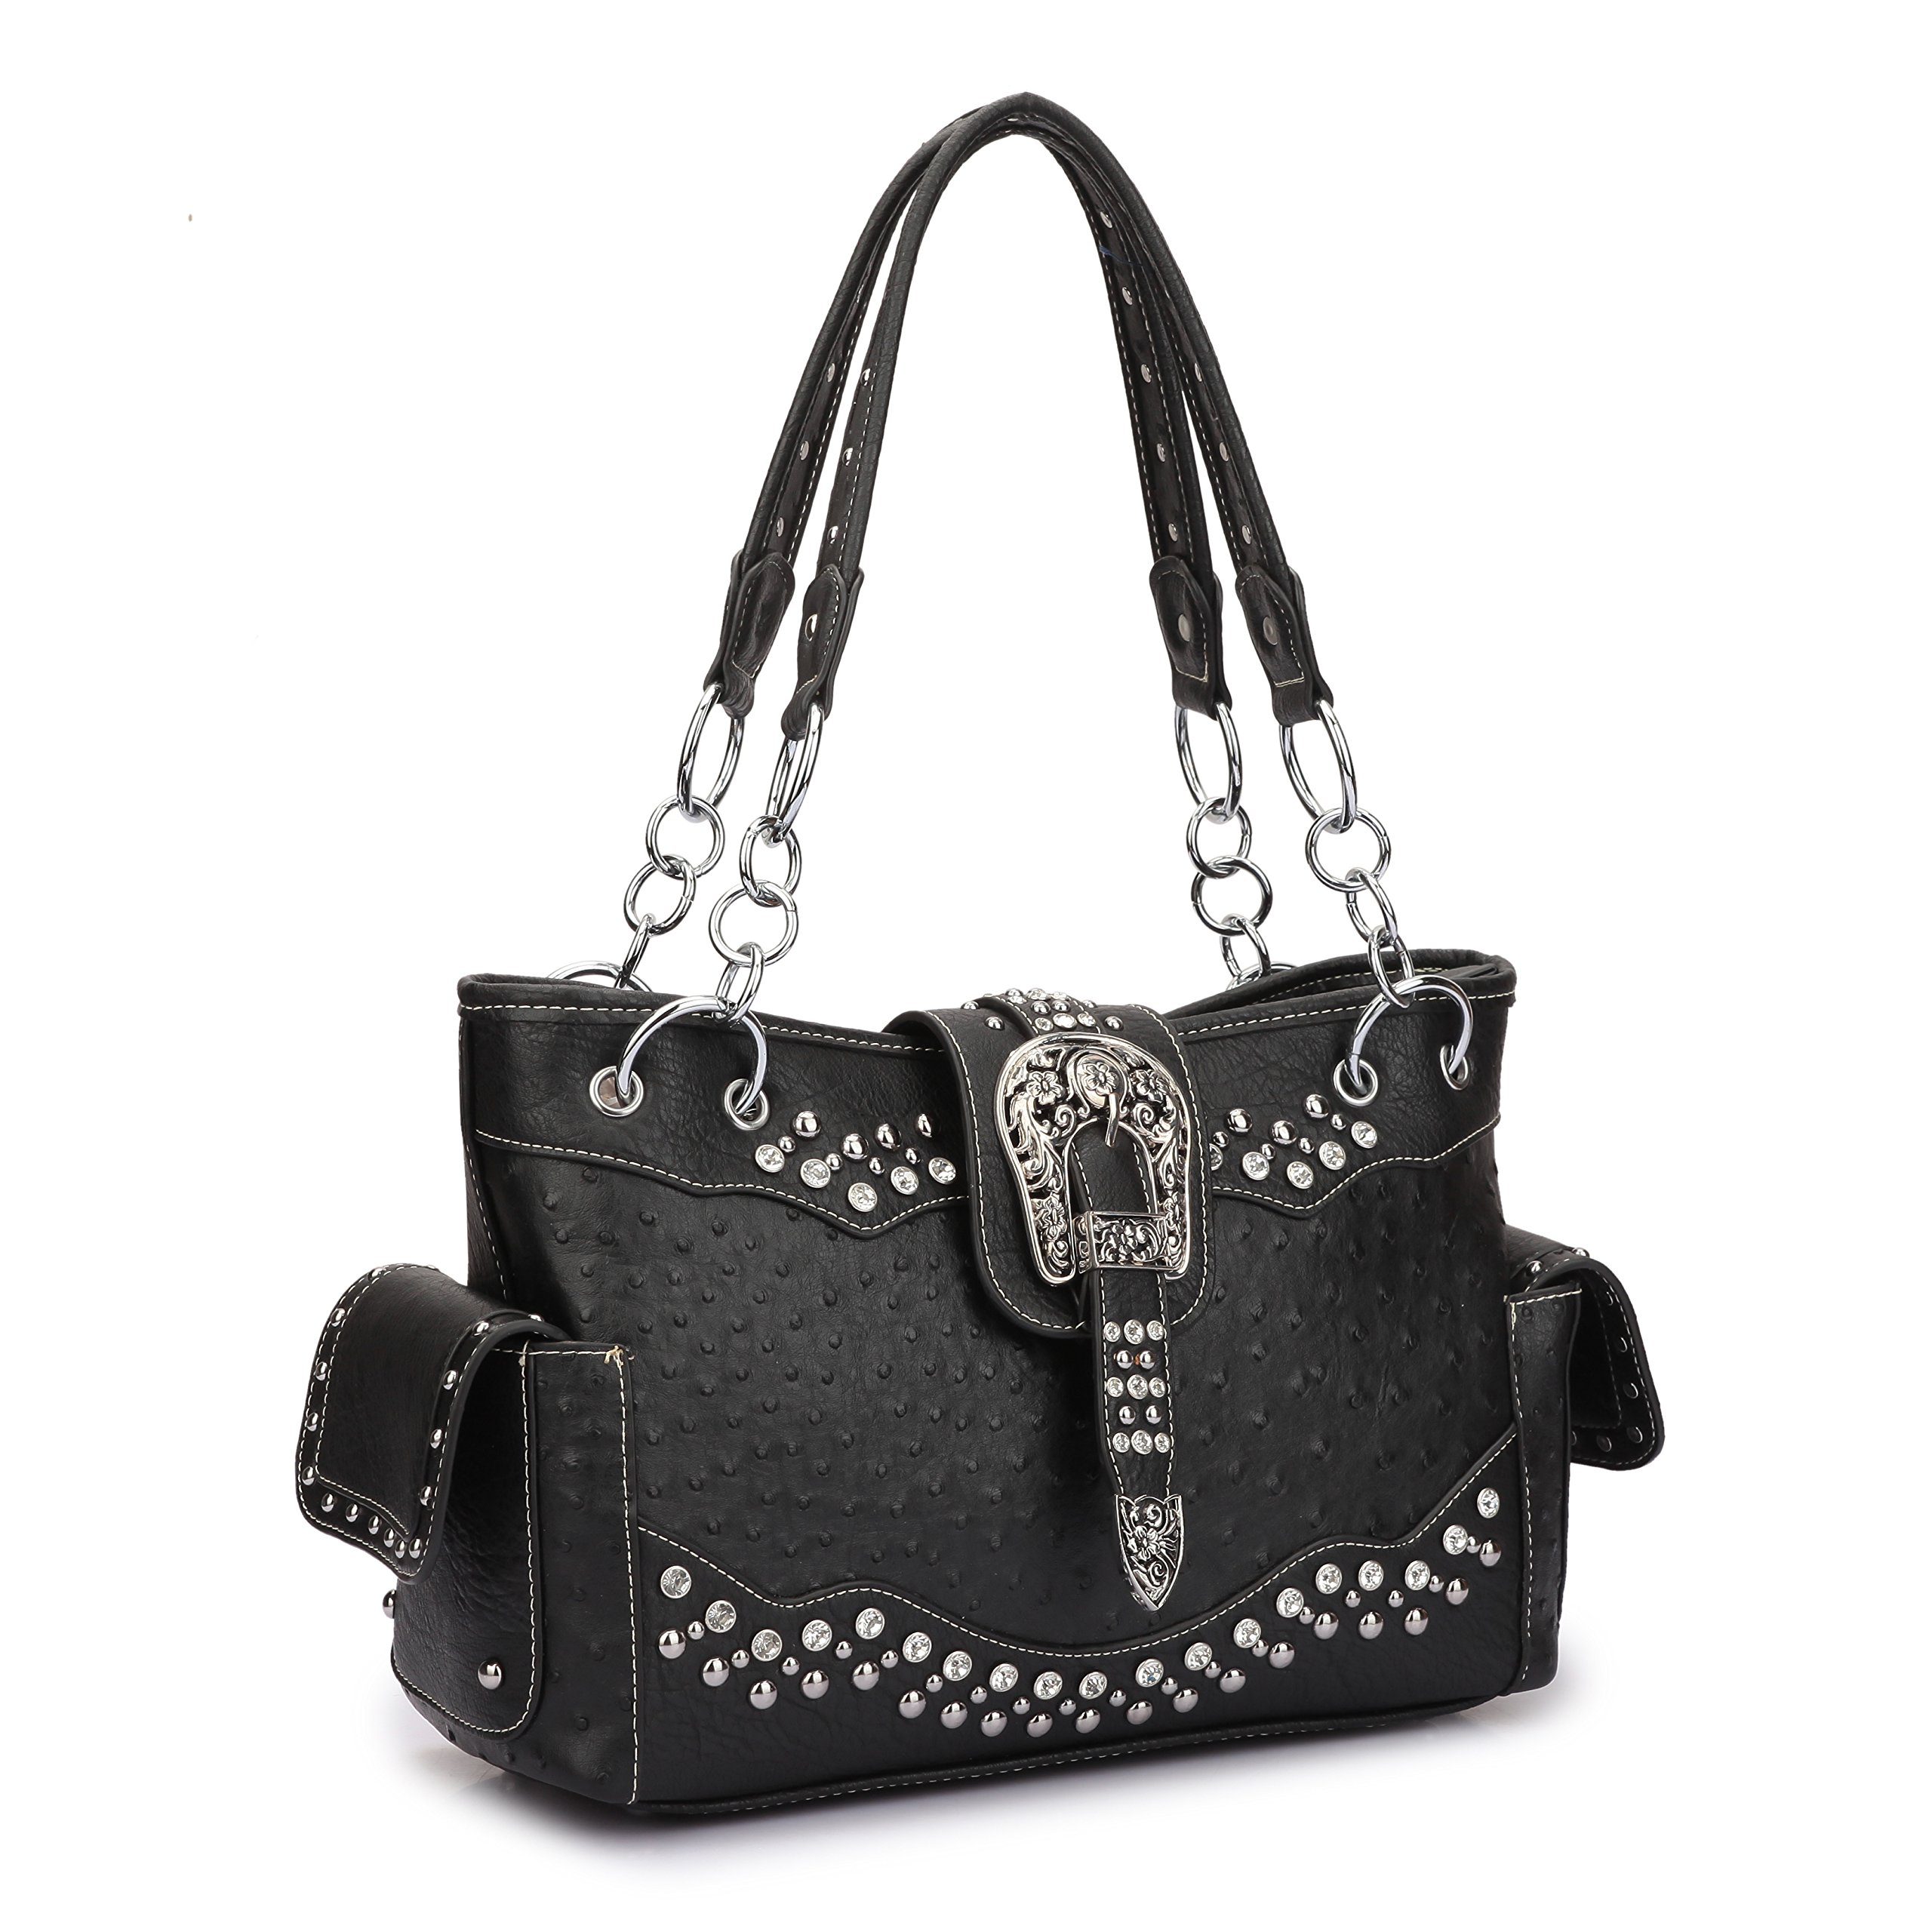 Women Western Handbags Purses Rhinestone Studded Shoulder Bags With Side Pockets (Ostrich style, Black)